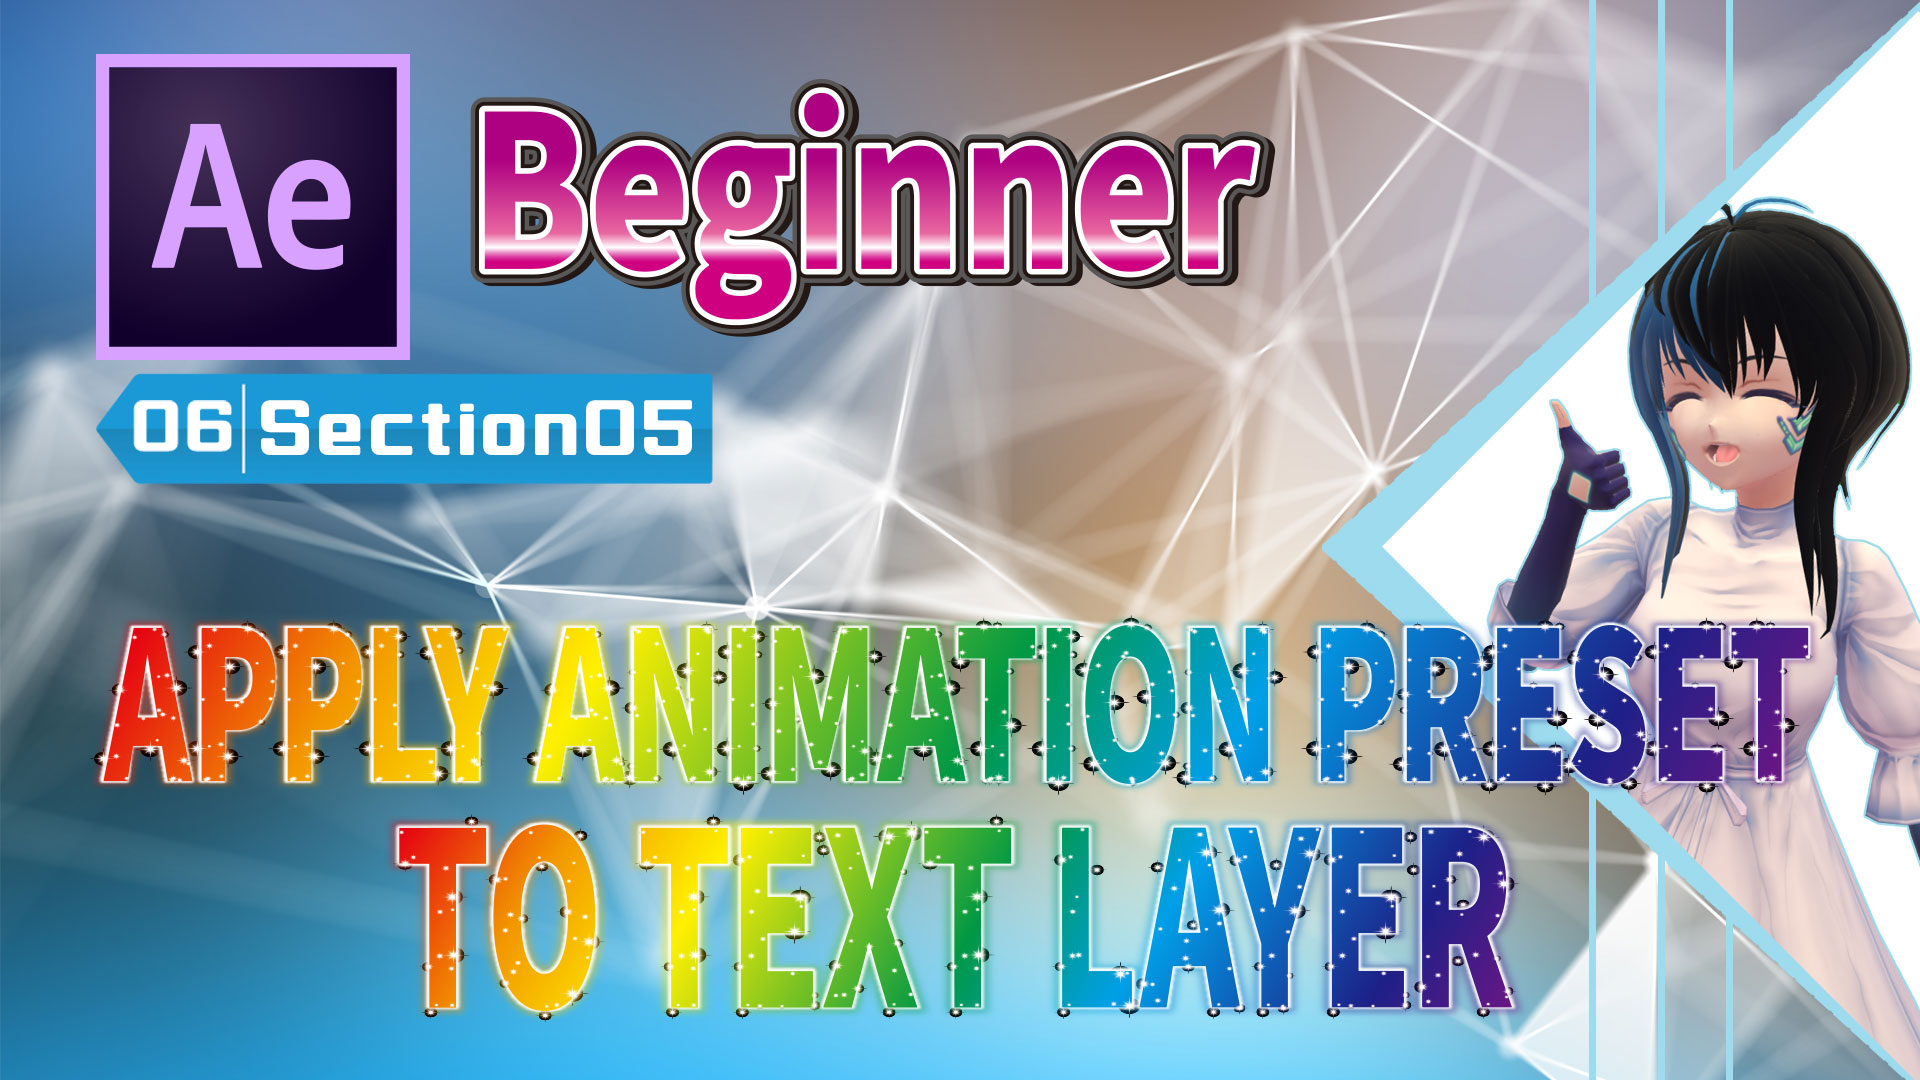 APPLY ANIMATION PRESET TO TEXT LAYER